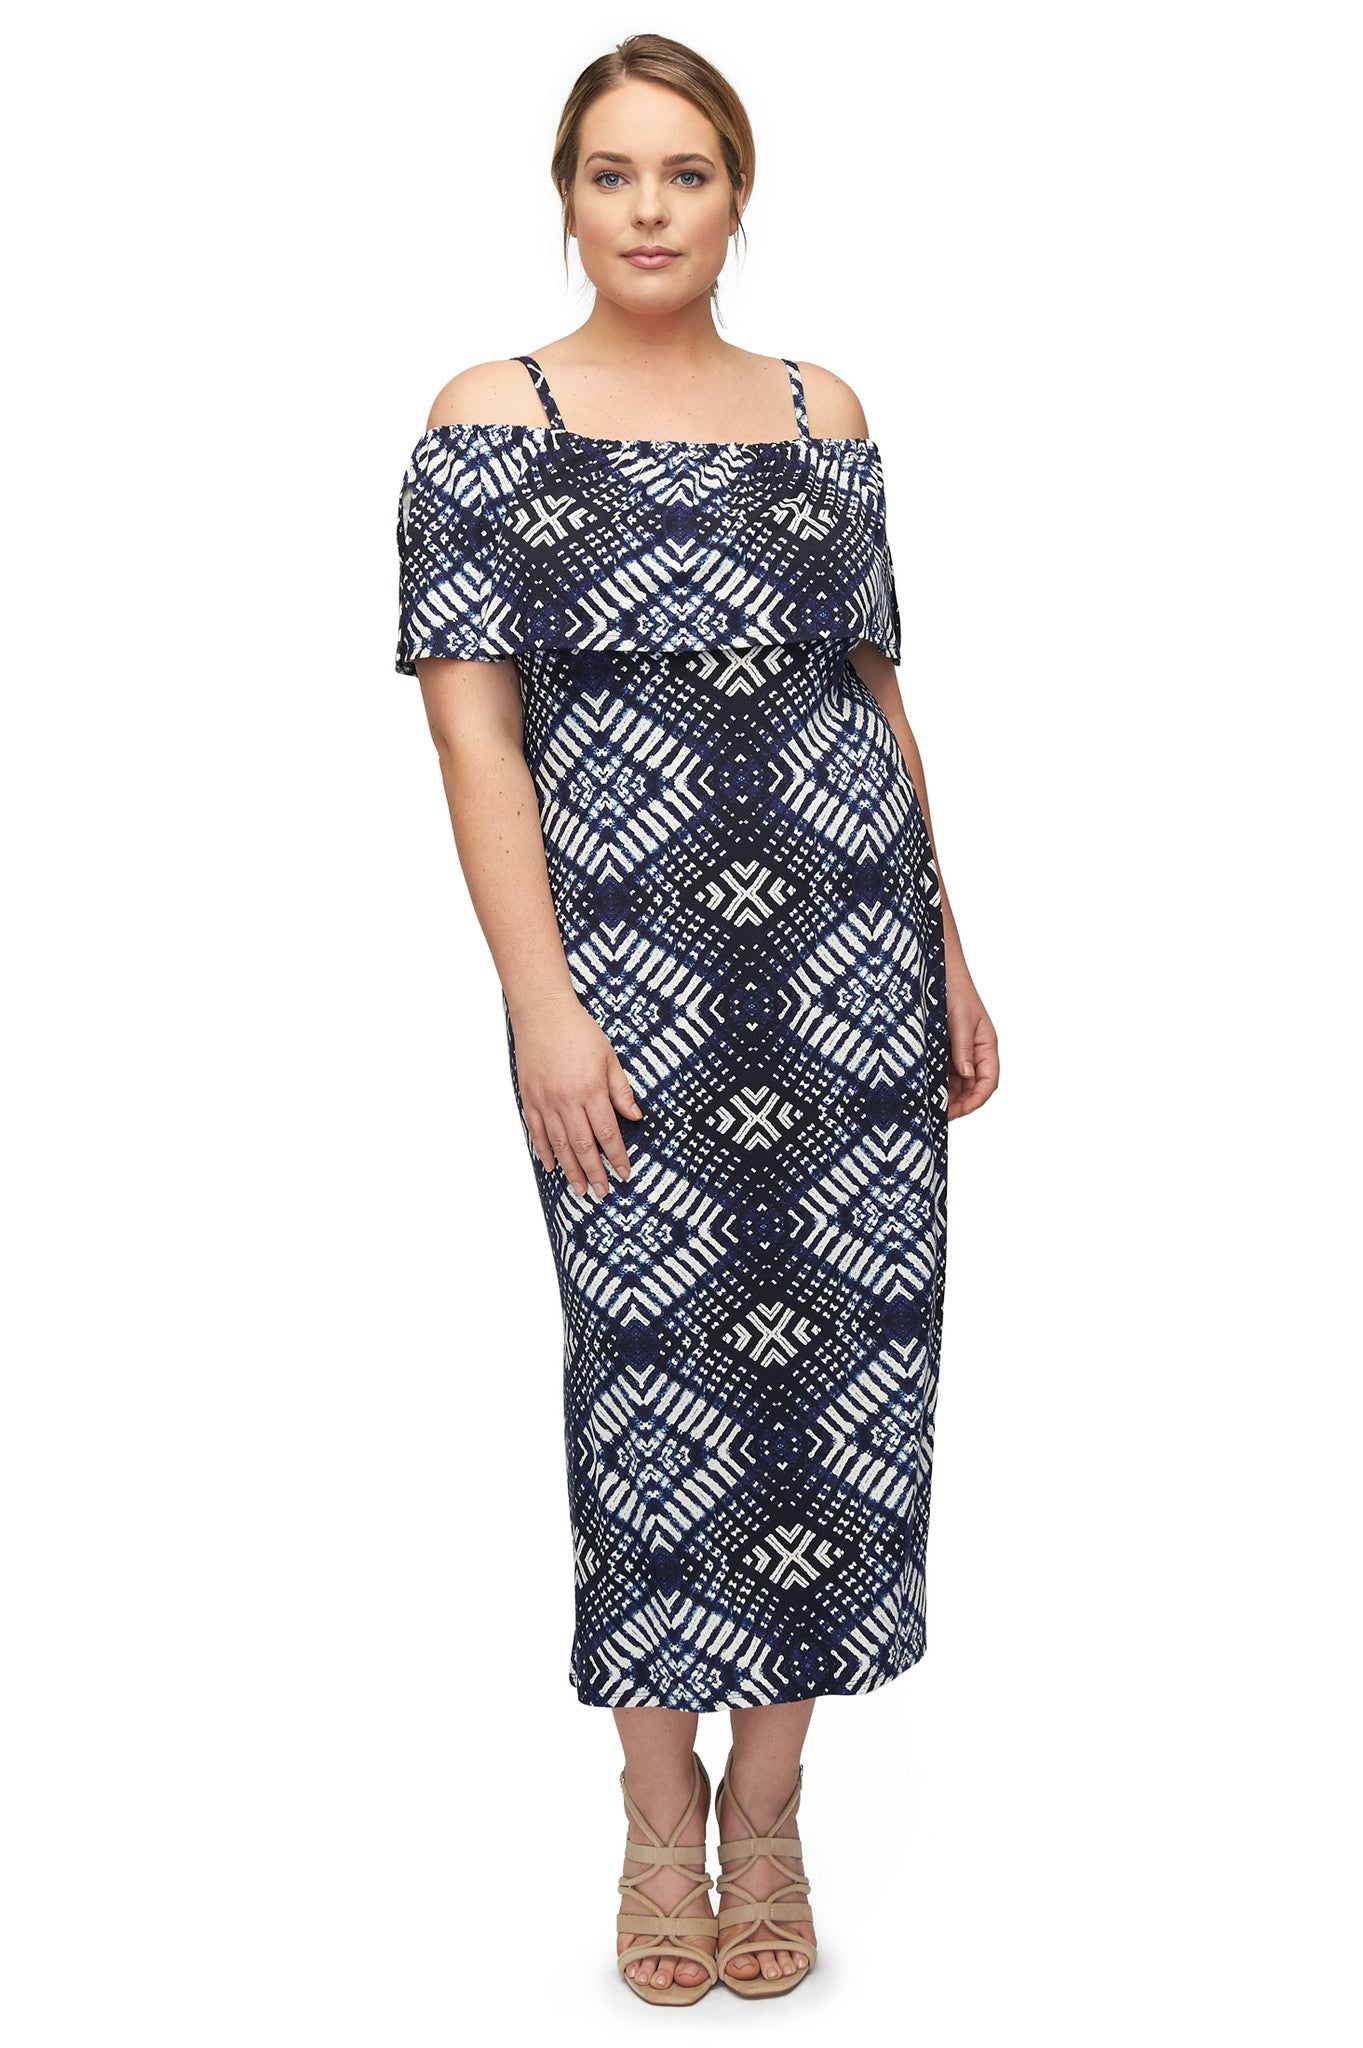 Pascal Dress WL Print - Indigo Ikat